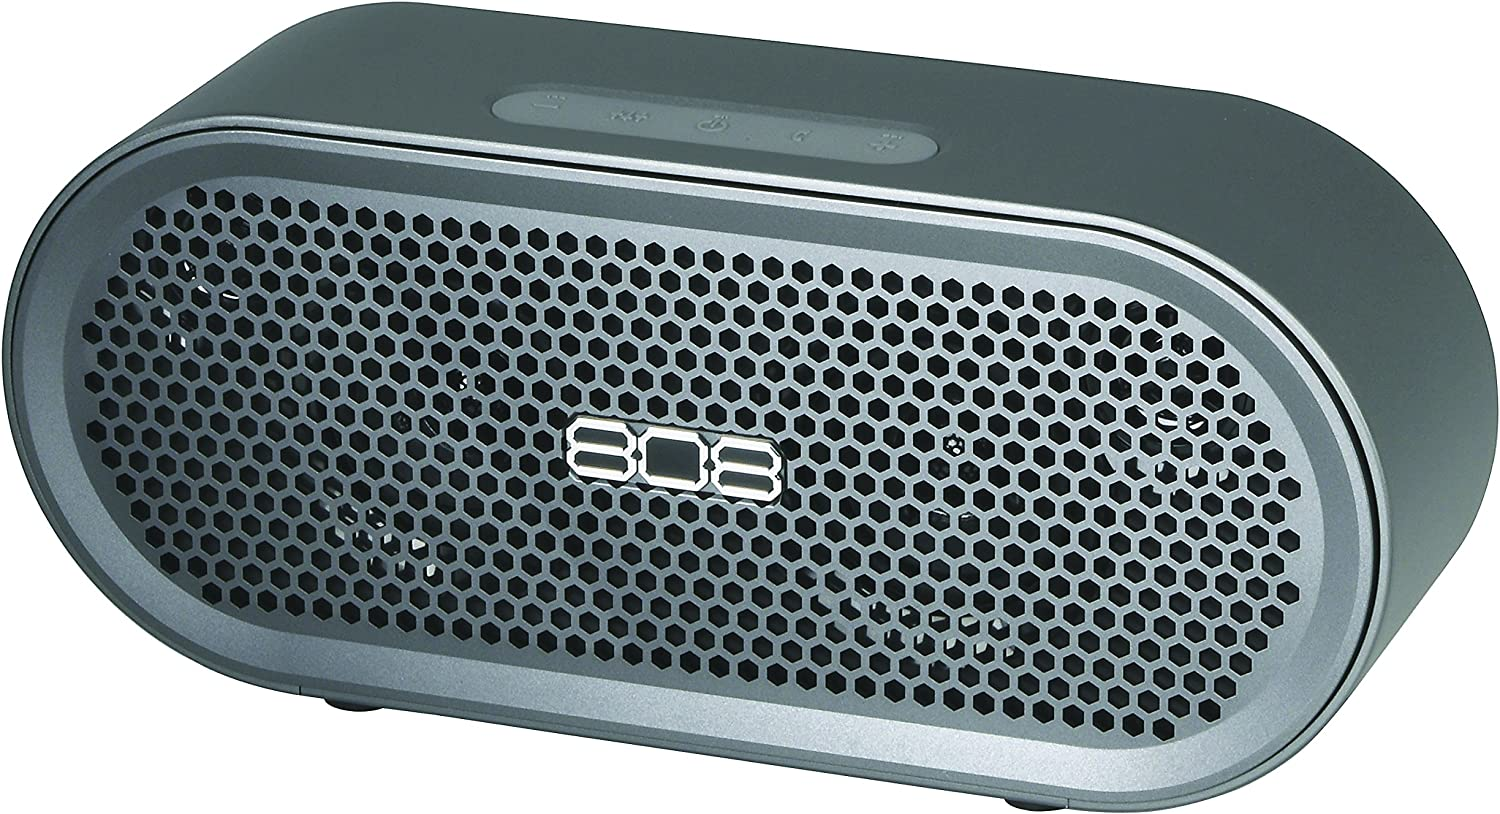 Wireless, Portable Bluetooth Speaker, TXS from 808 Audio with 17 hr Battery, Bass Boost for Premium Sound, Heavy Duty, Durable, Anodized Aluminum Casing for Indoor or Outdoor, at Home or on The Road